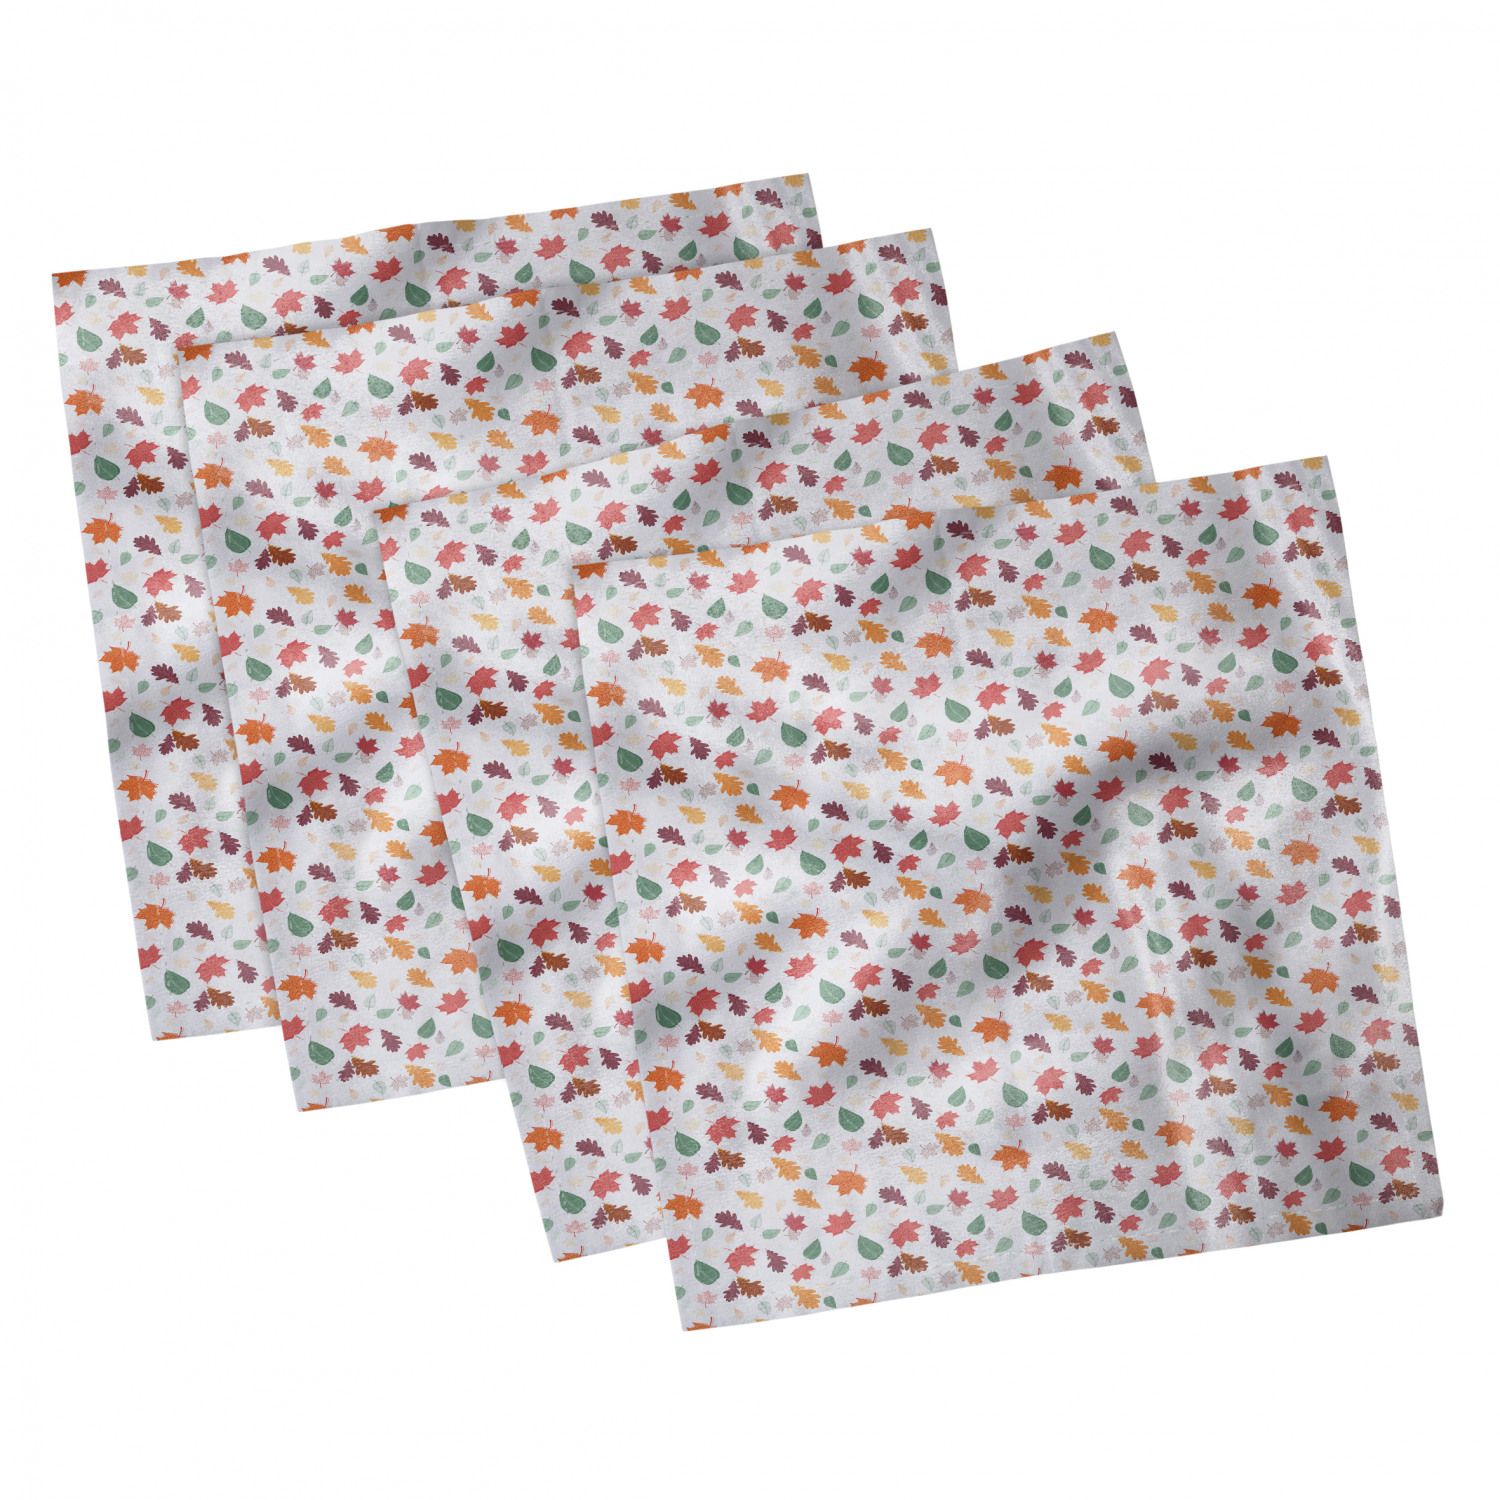 thumbnail 7 - Ambesonne-Leaves-Forest-Decorative-Satin-Napkins-Set-of-4-Party-Dinner-Fabric